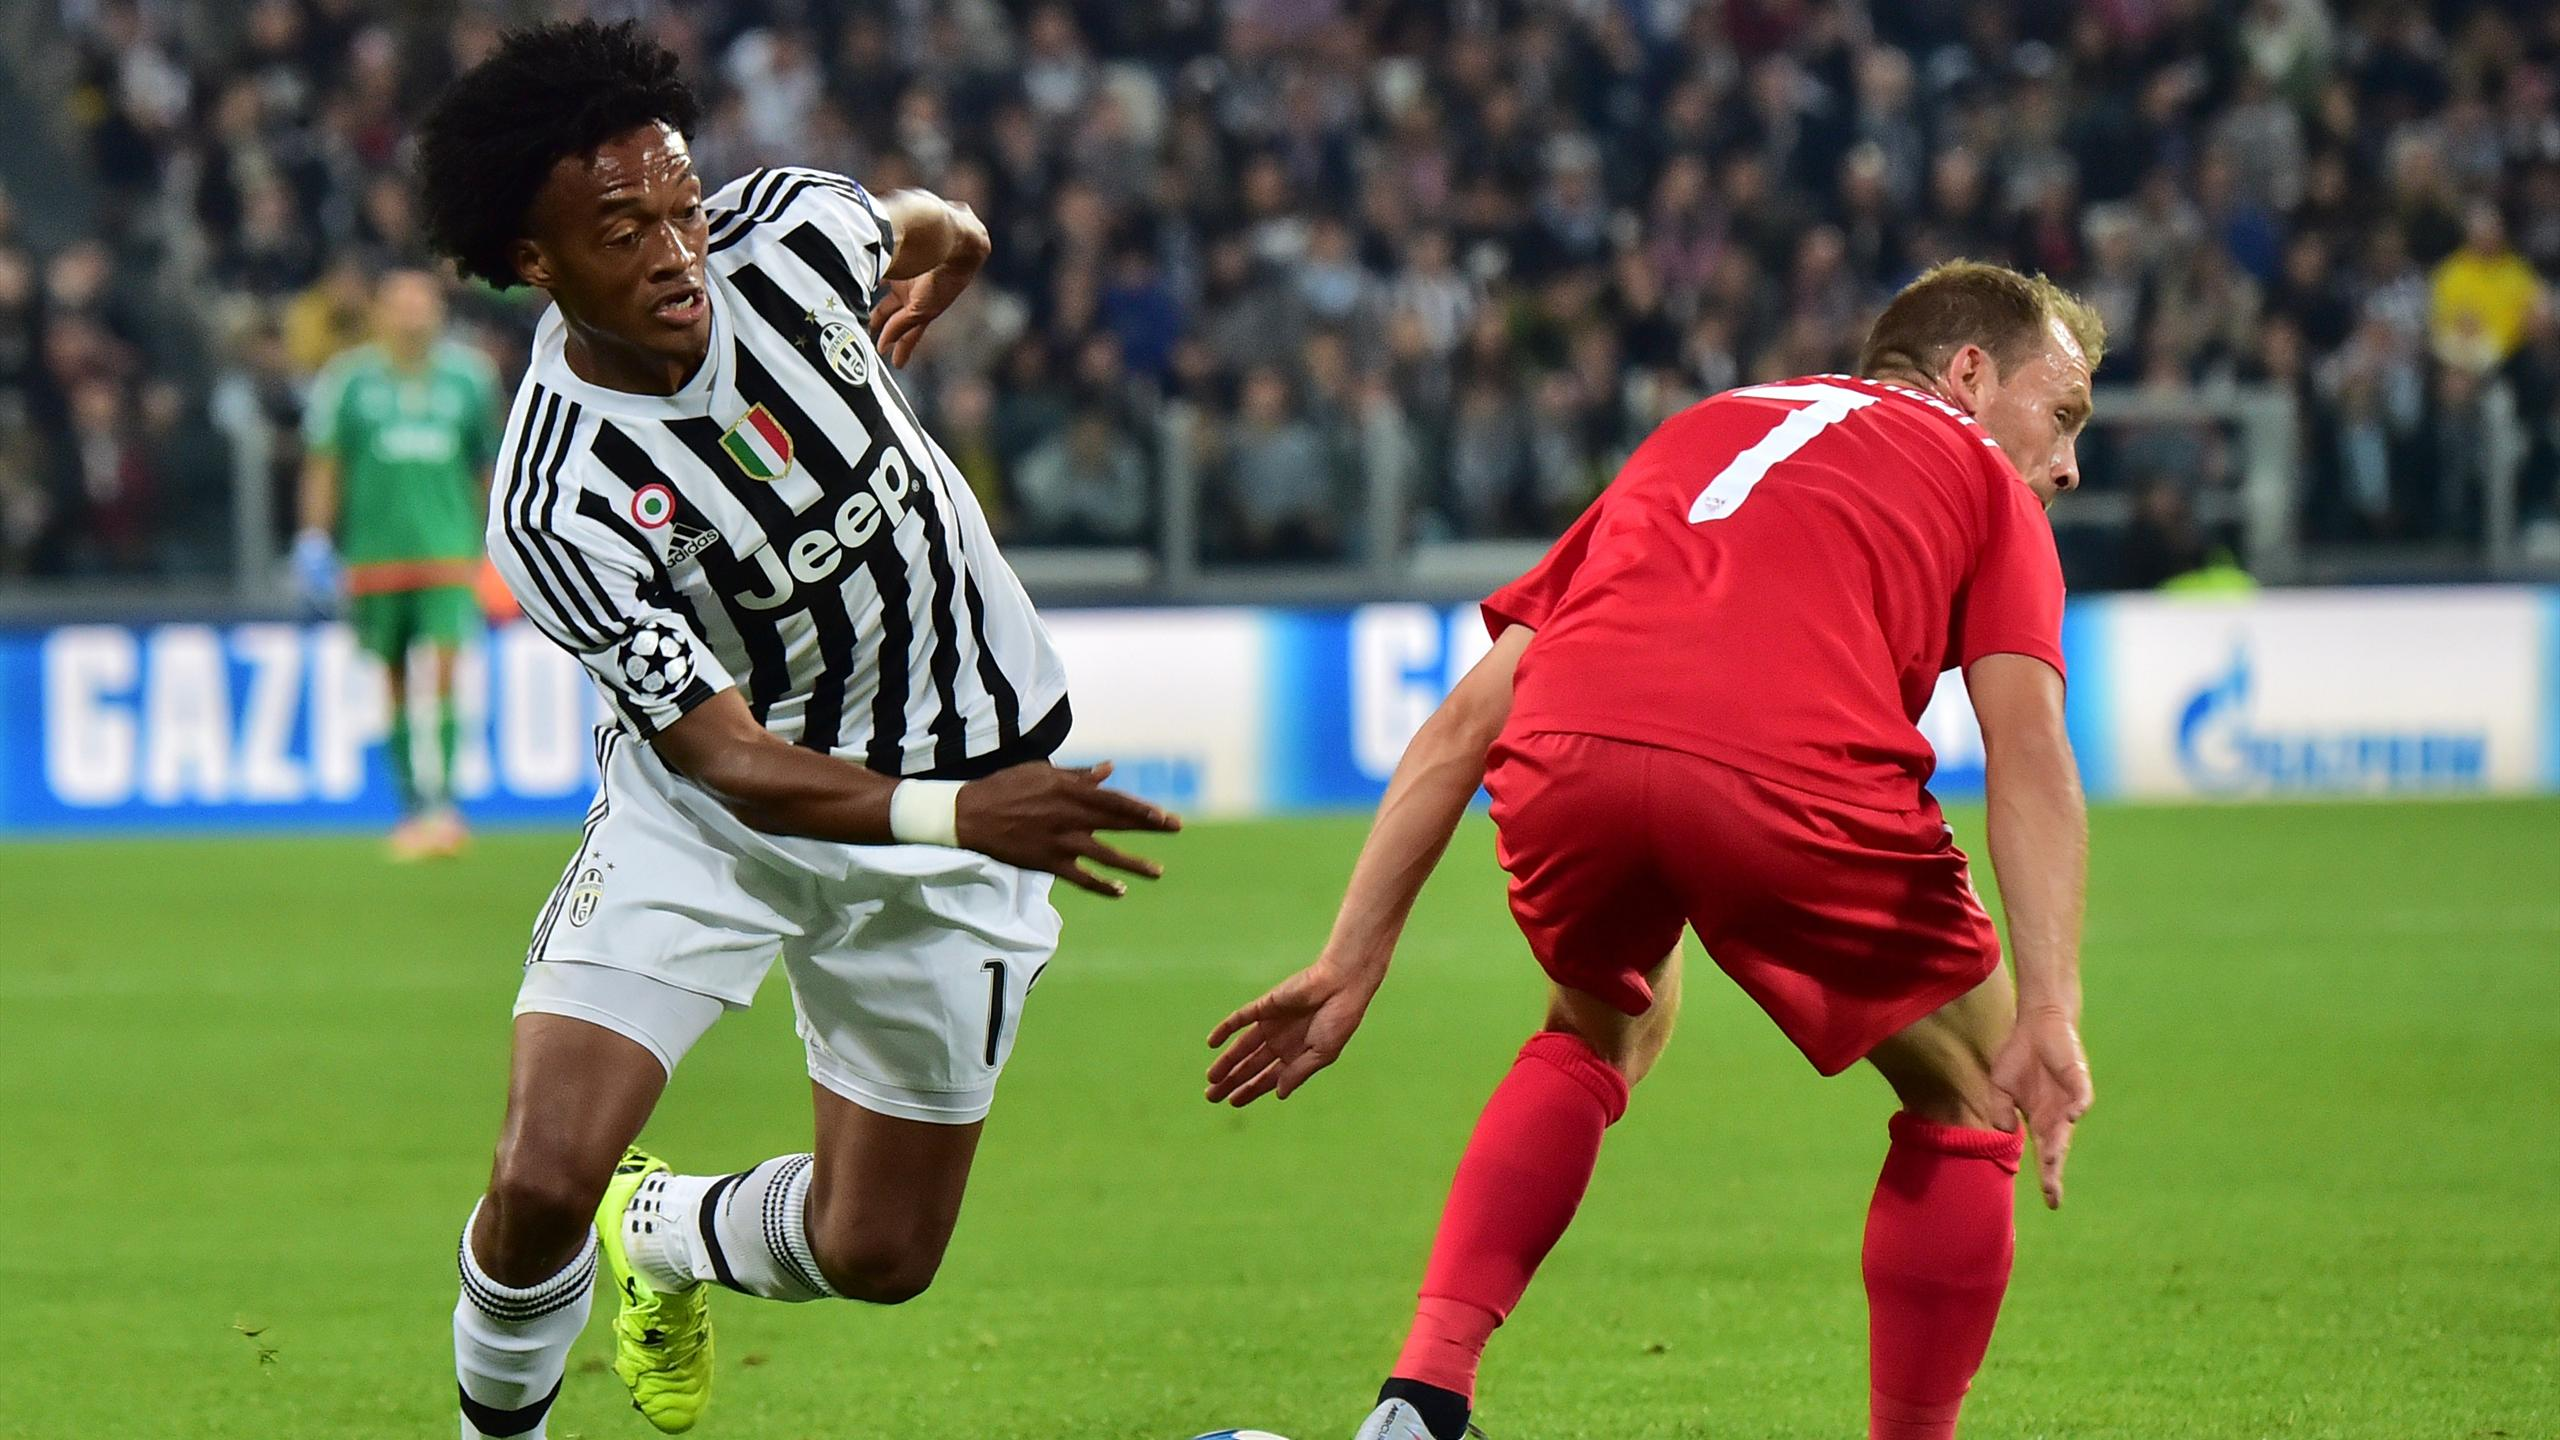 Sevilla's Danish midfielder Michael Krohn-Dehli (R) vies with Juventus' forward from Colombia Juan Cuadrado during the UEFA Champions League football match Juventus vs FC Sevilla on September 30 at the Juventus stadium in Turin